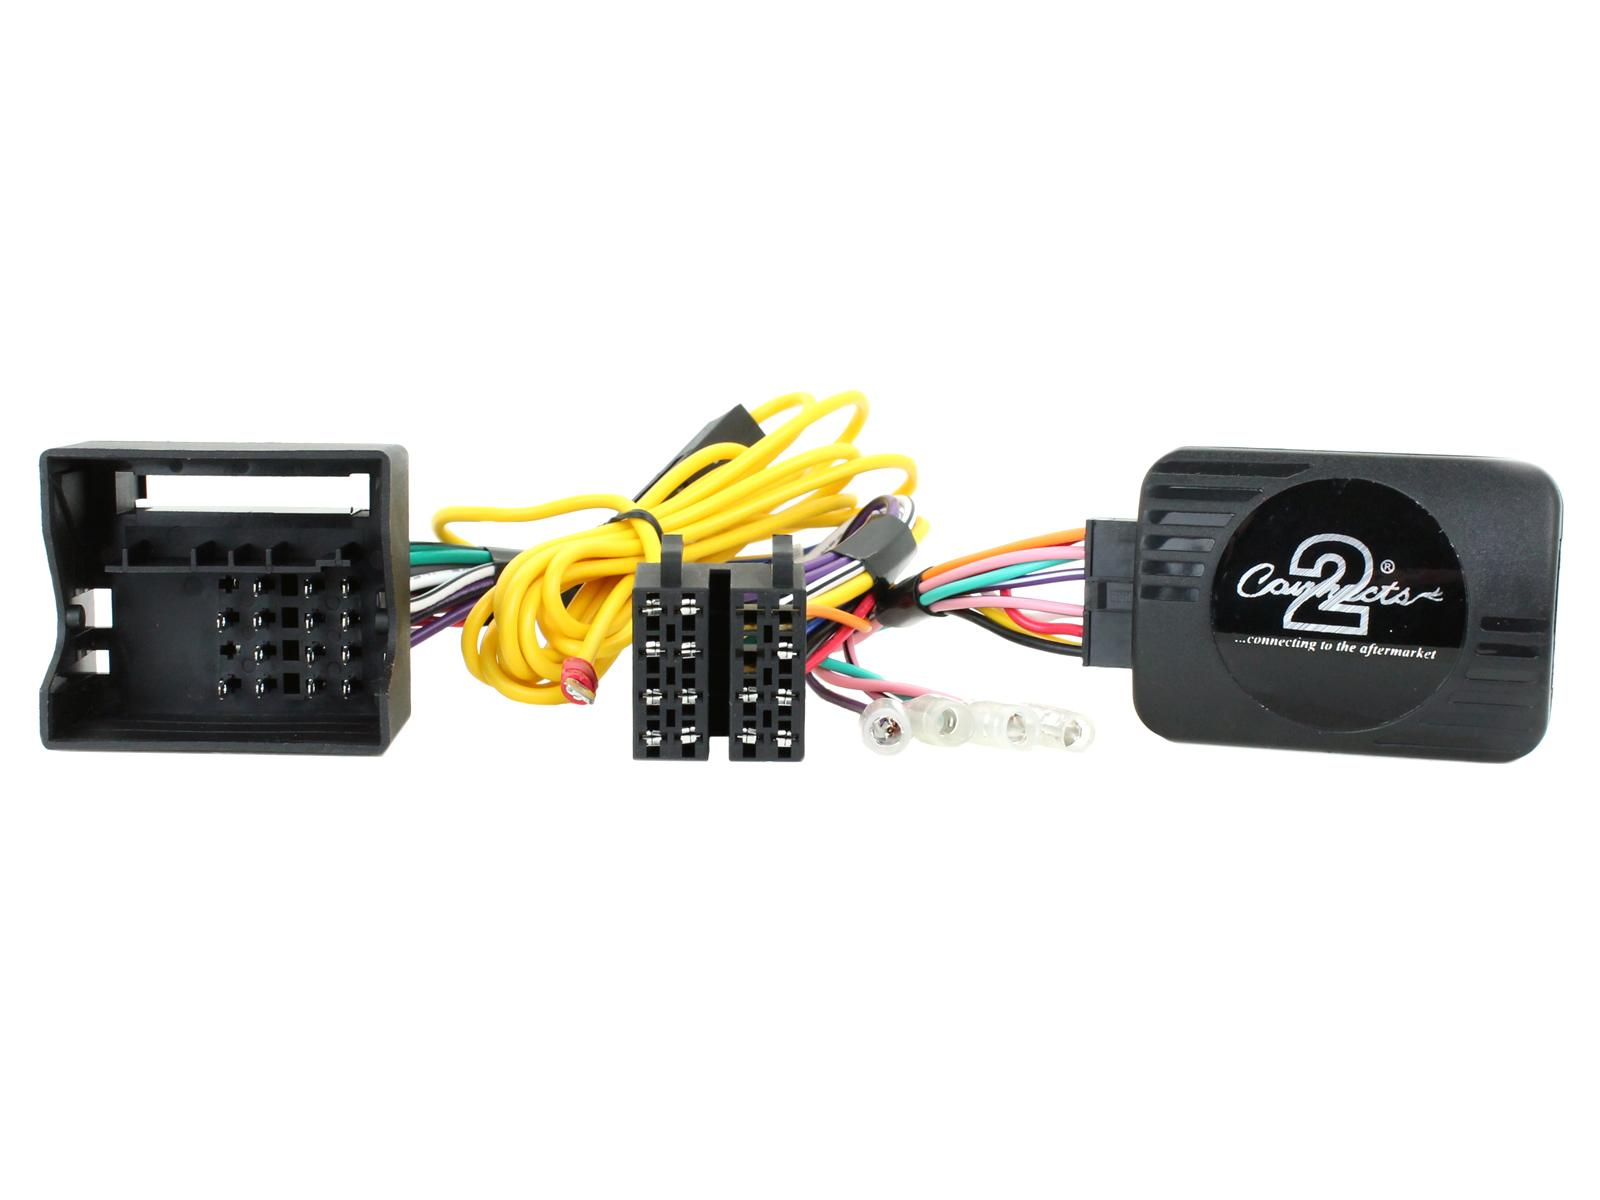 Car Stereo Wire Harnesses - Radio Wires for all Car Audio - Wiring on mach 460 cd error, mach 460 wiring small connector, mach 460 plug color codes, mach 460 wiring 1995 ford mustang, mach 460 wiring kit, mach 460 amplifier specs,